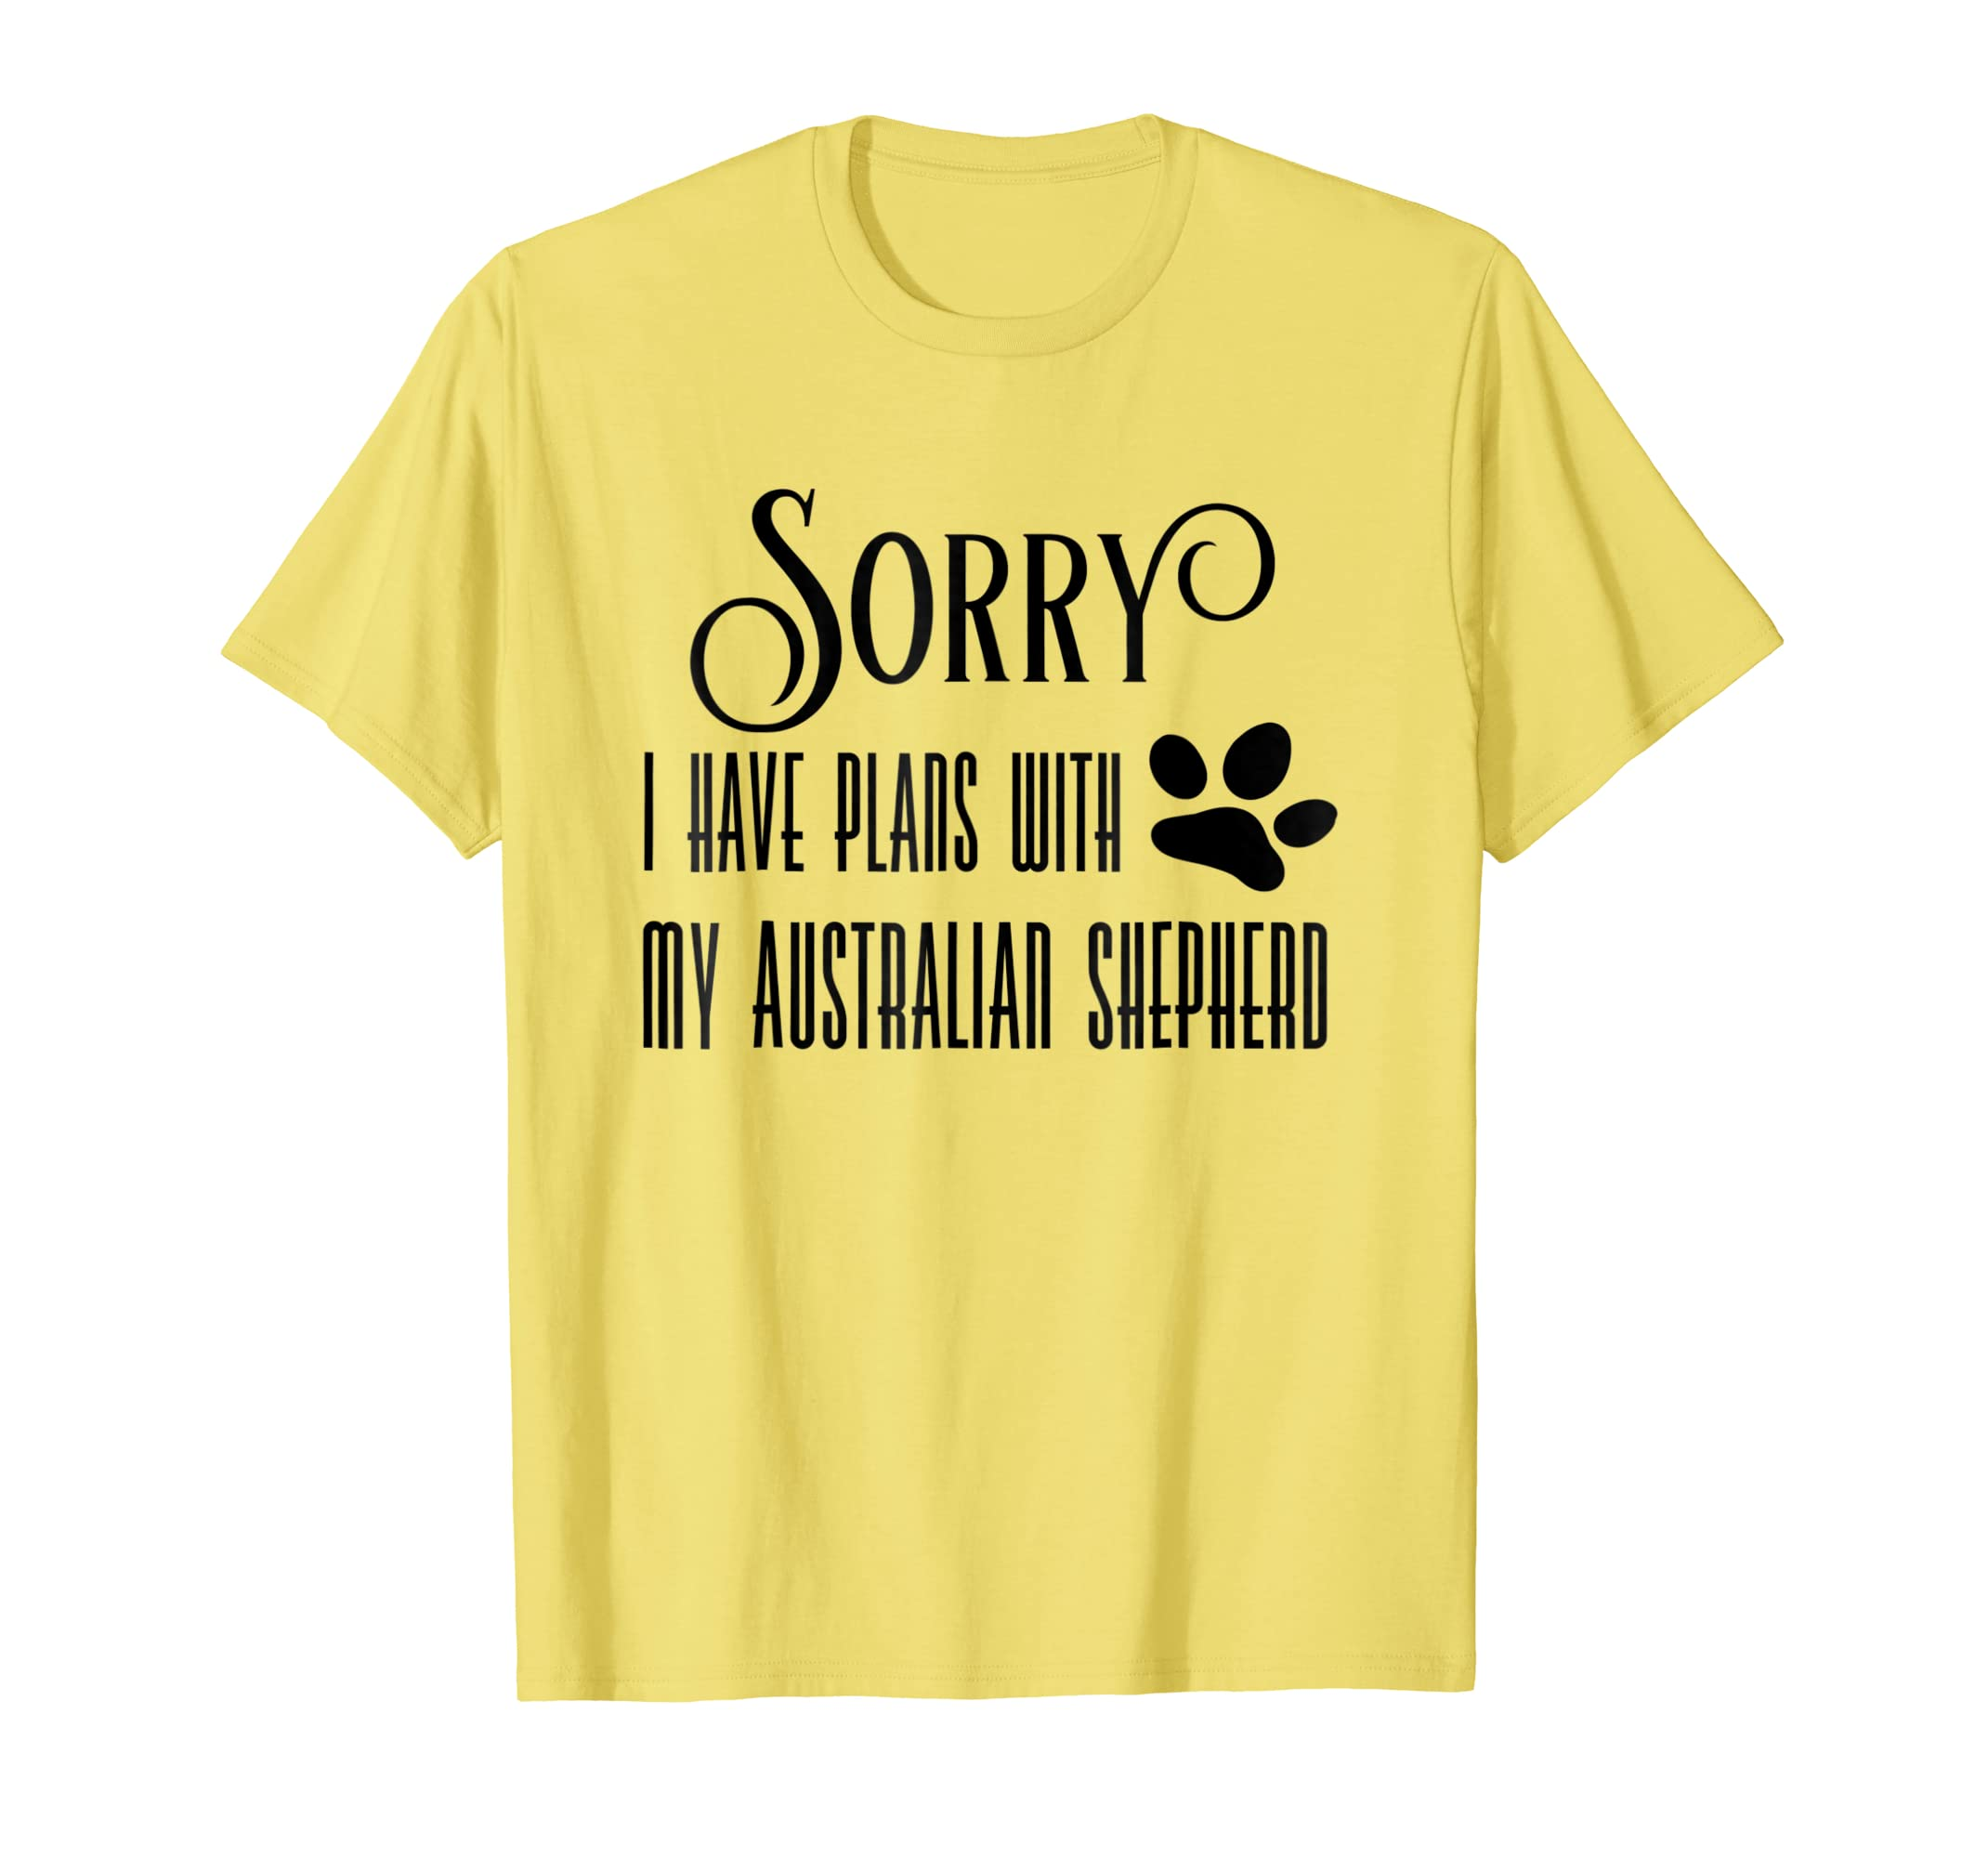 Aussie Shepherd TShirt for Australian Dog T-Shirt-AZP